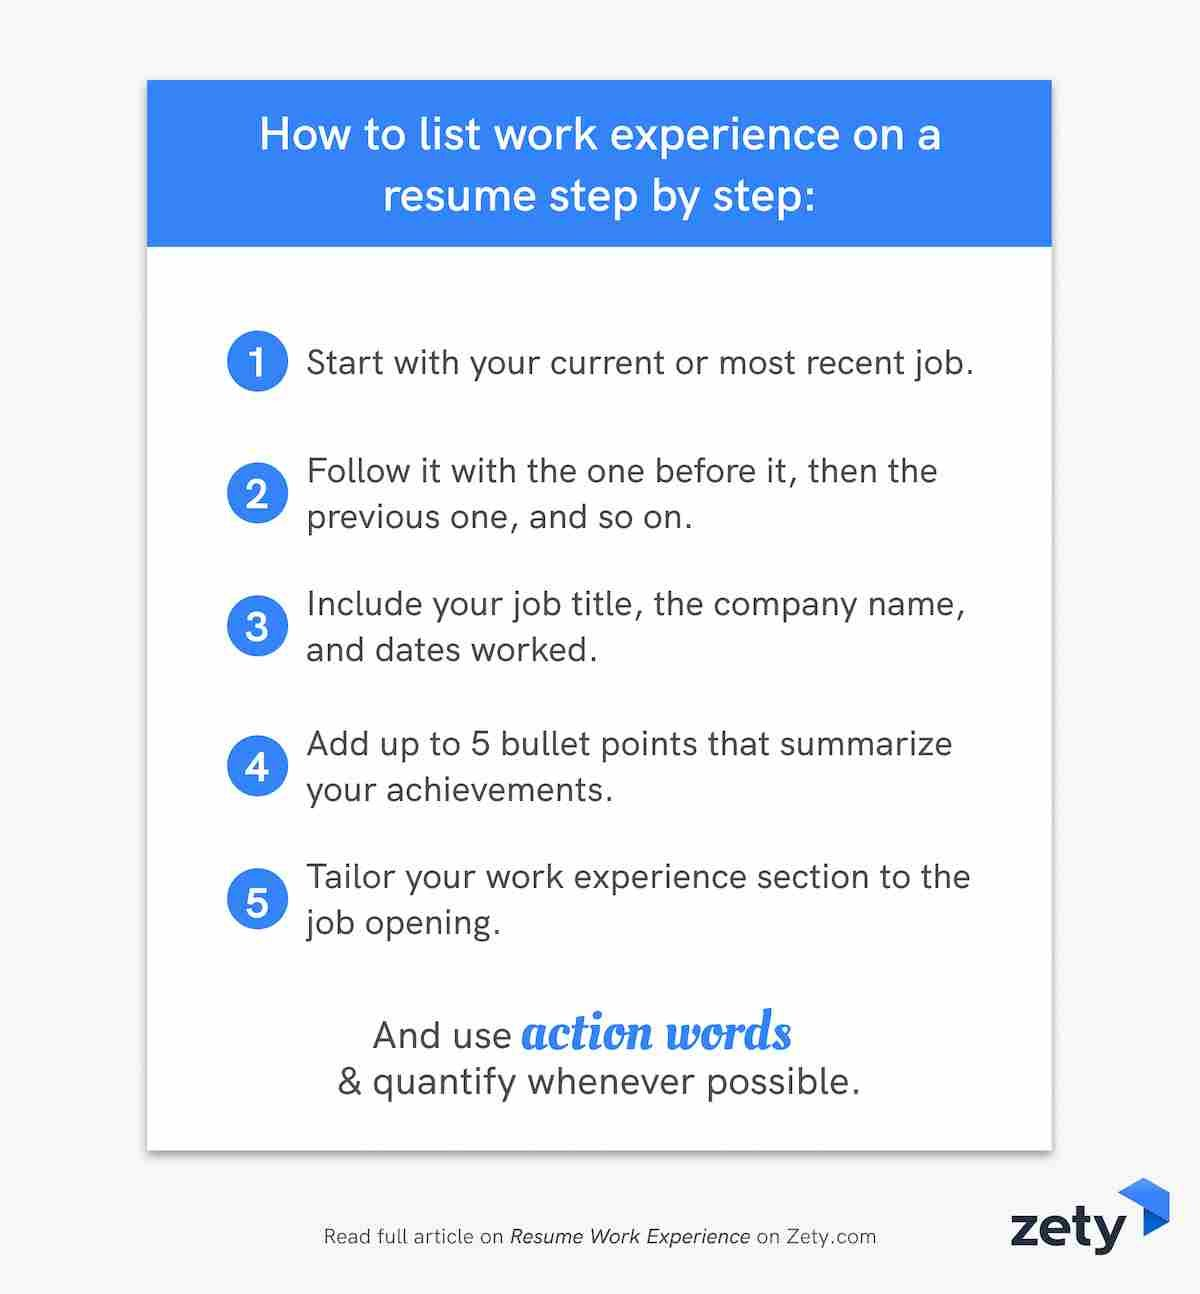 How to write your resume job descriptions step by step